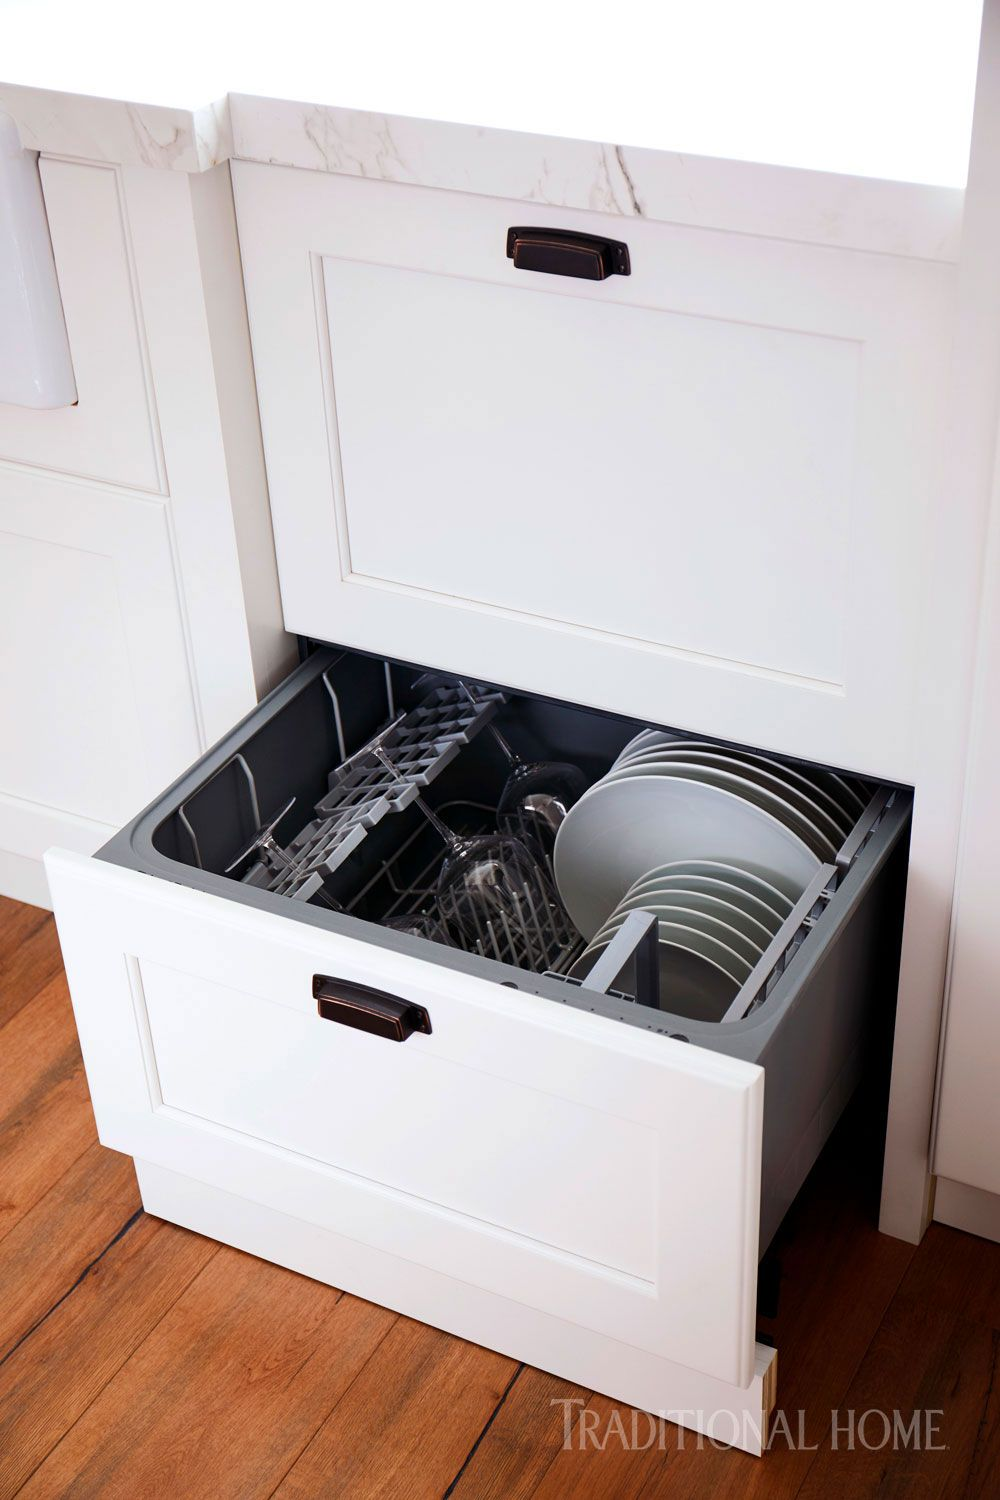 24 Inch Double Drawer Dishwasher Integrated Through Kitchen